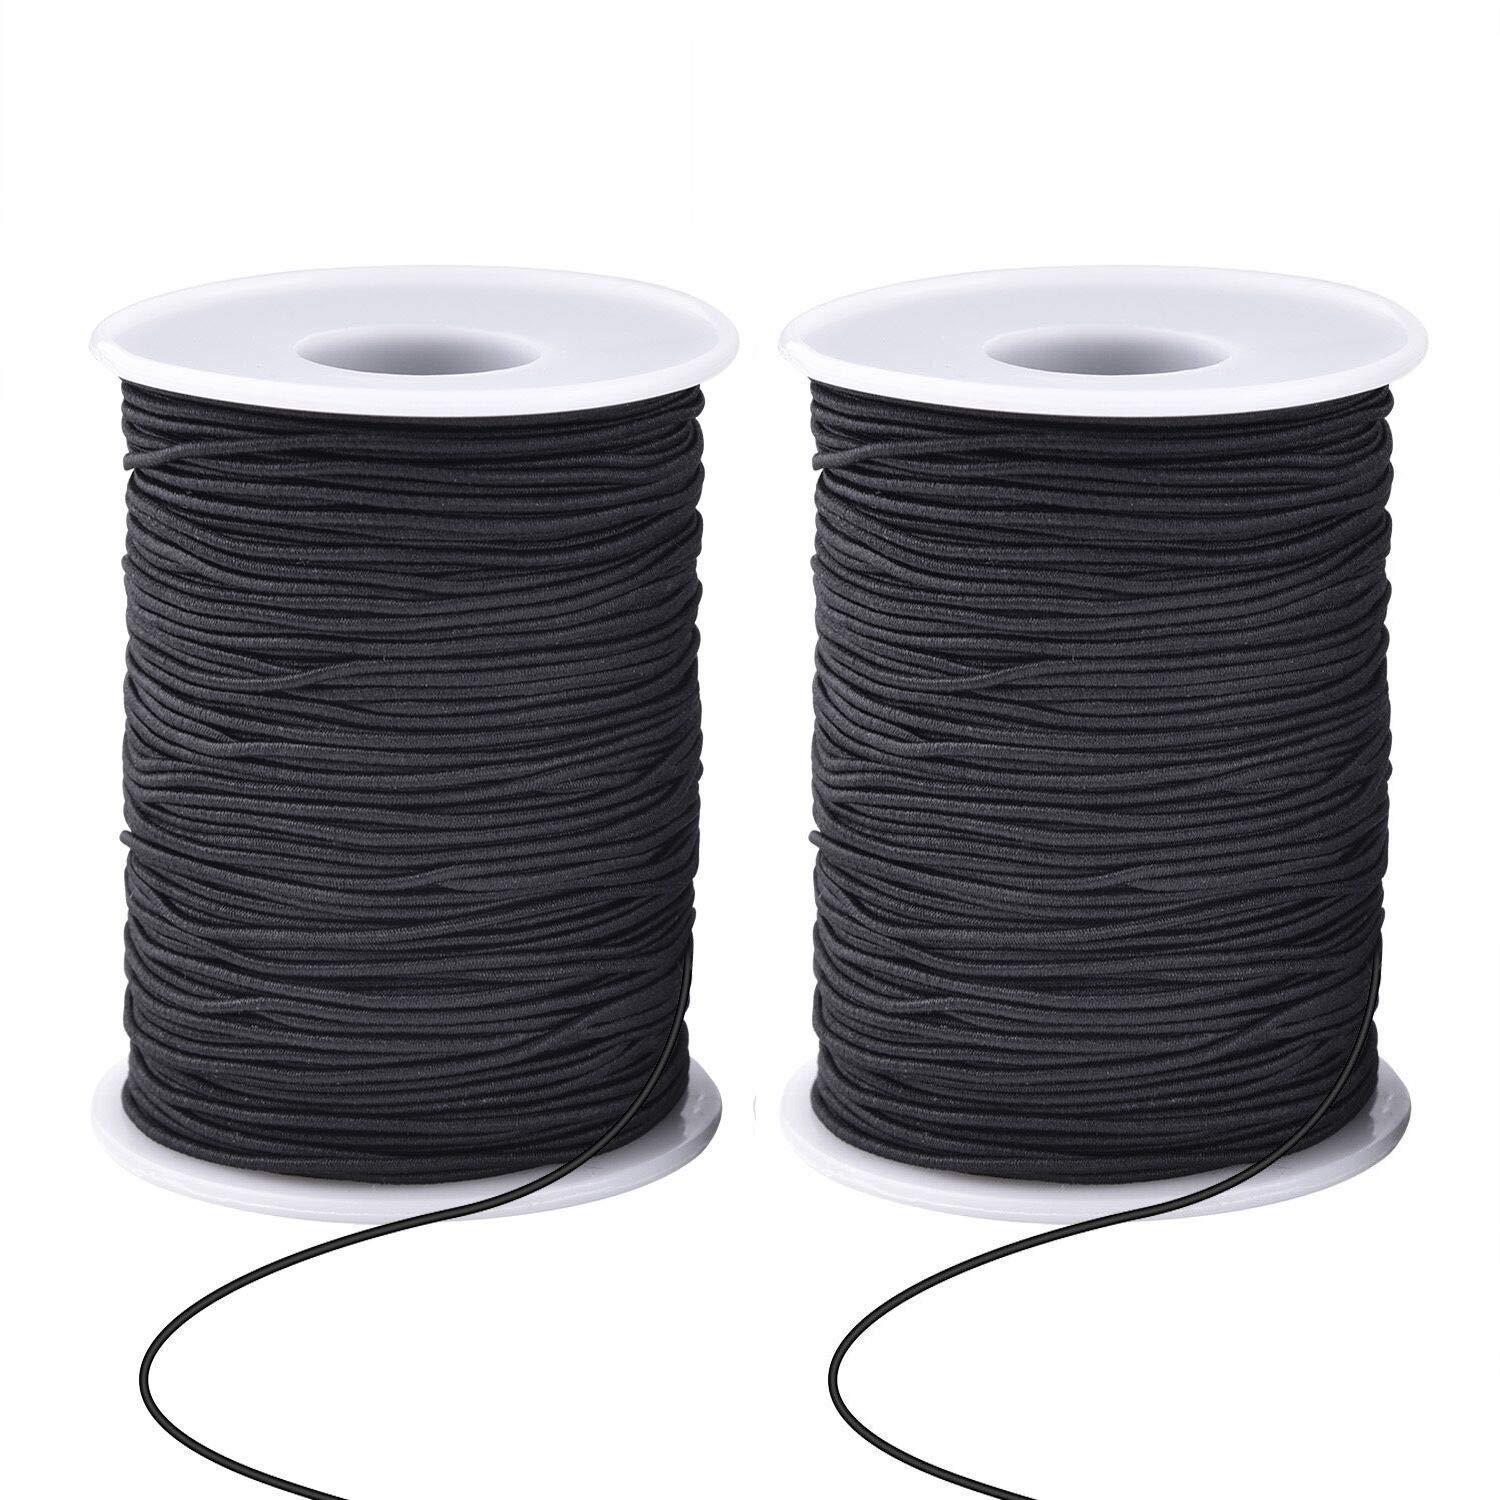 Zealor 2 Roll 1 mm Elastic String Cord Elastic Thread Beading String Cord for Jewelry Making Bracelets Beading 100 Meters//Roll White